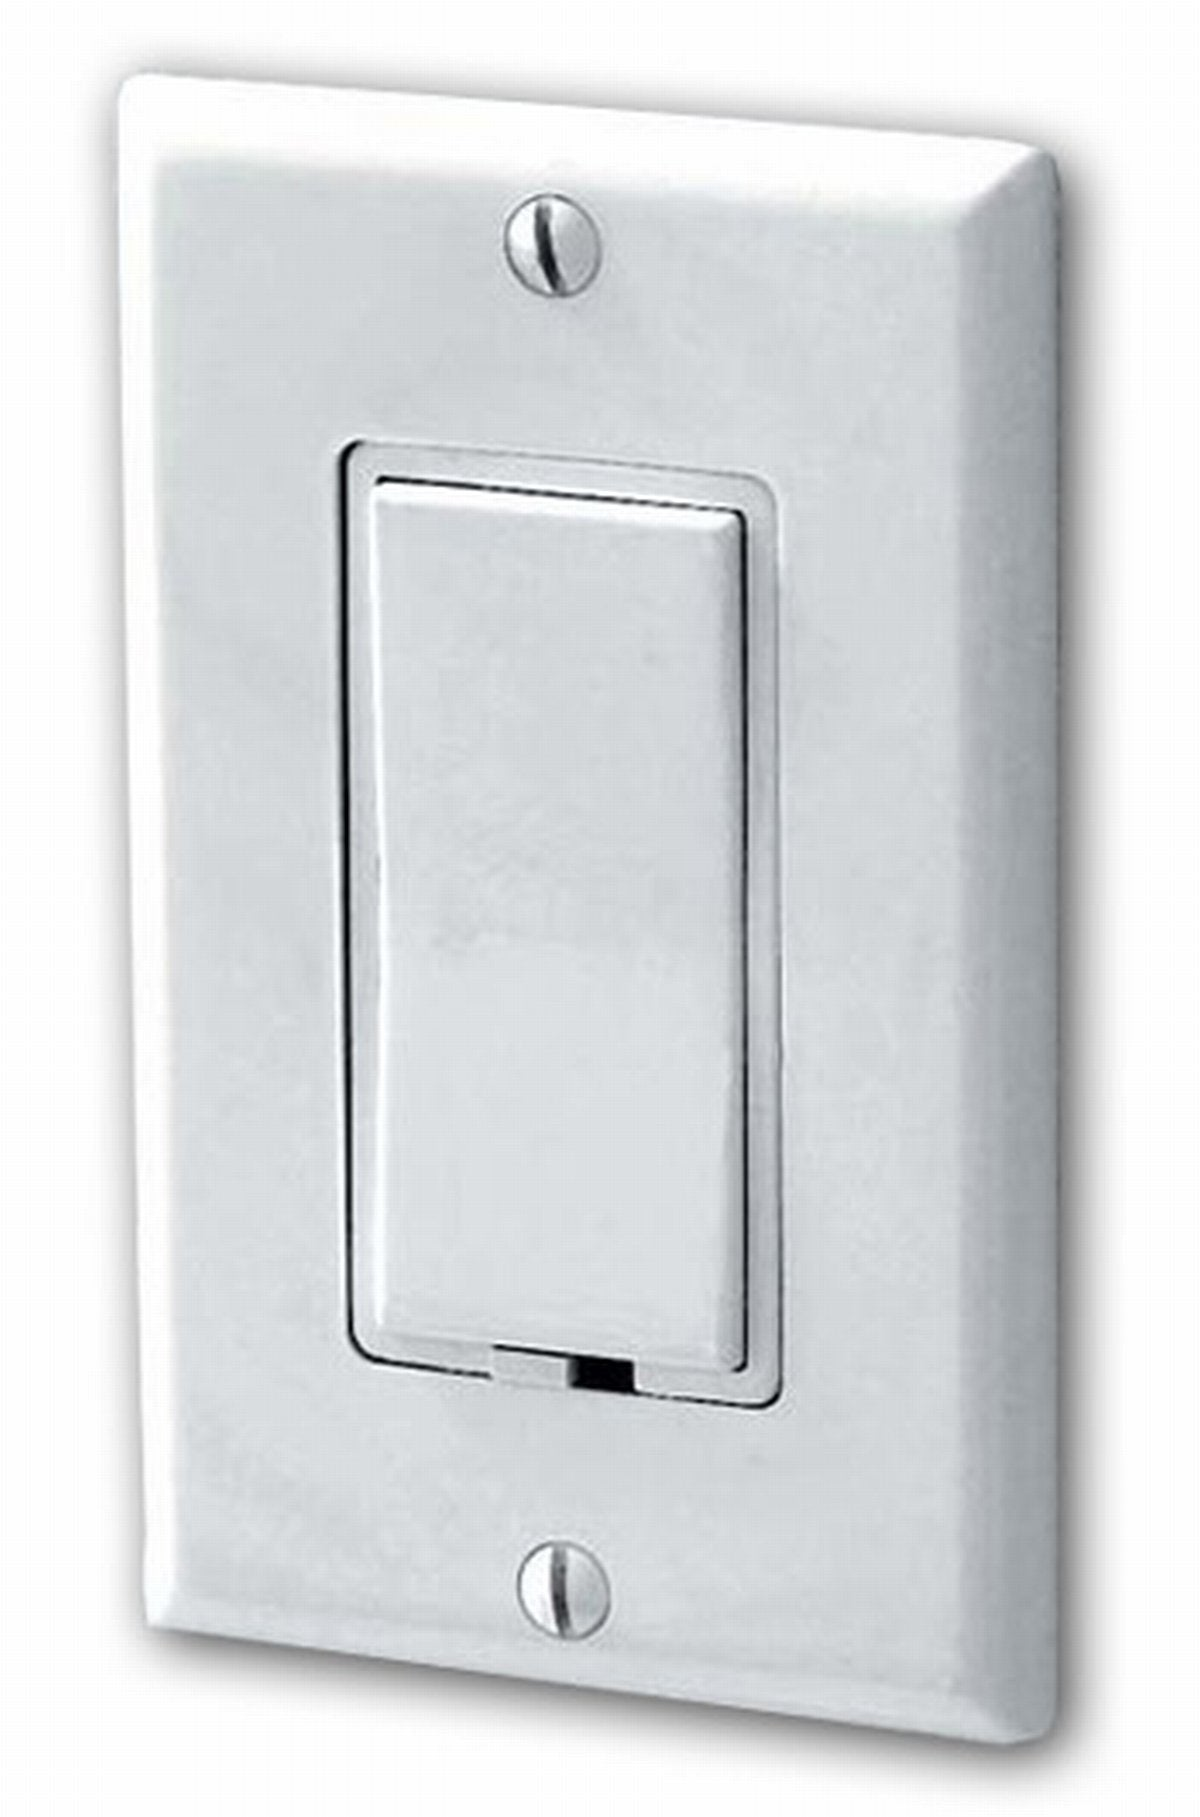 X10 Relay Light Switch - Broadened Horizons Direct